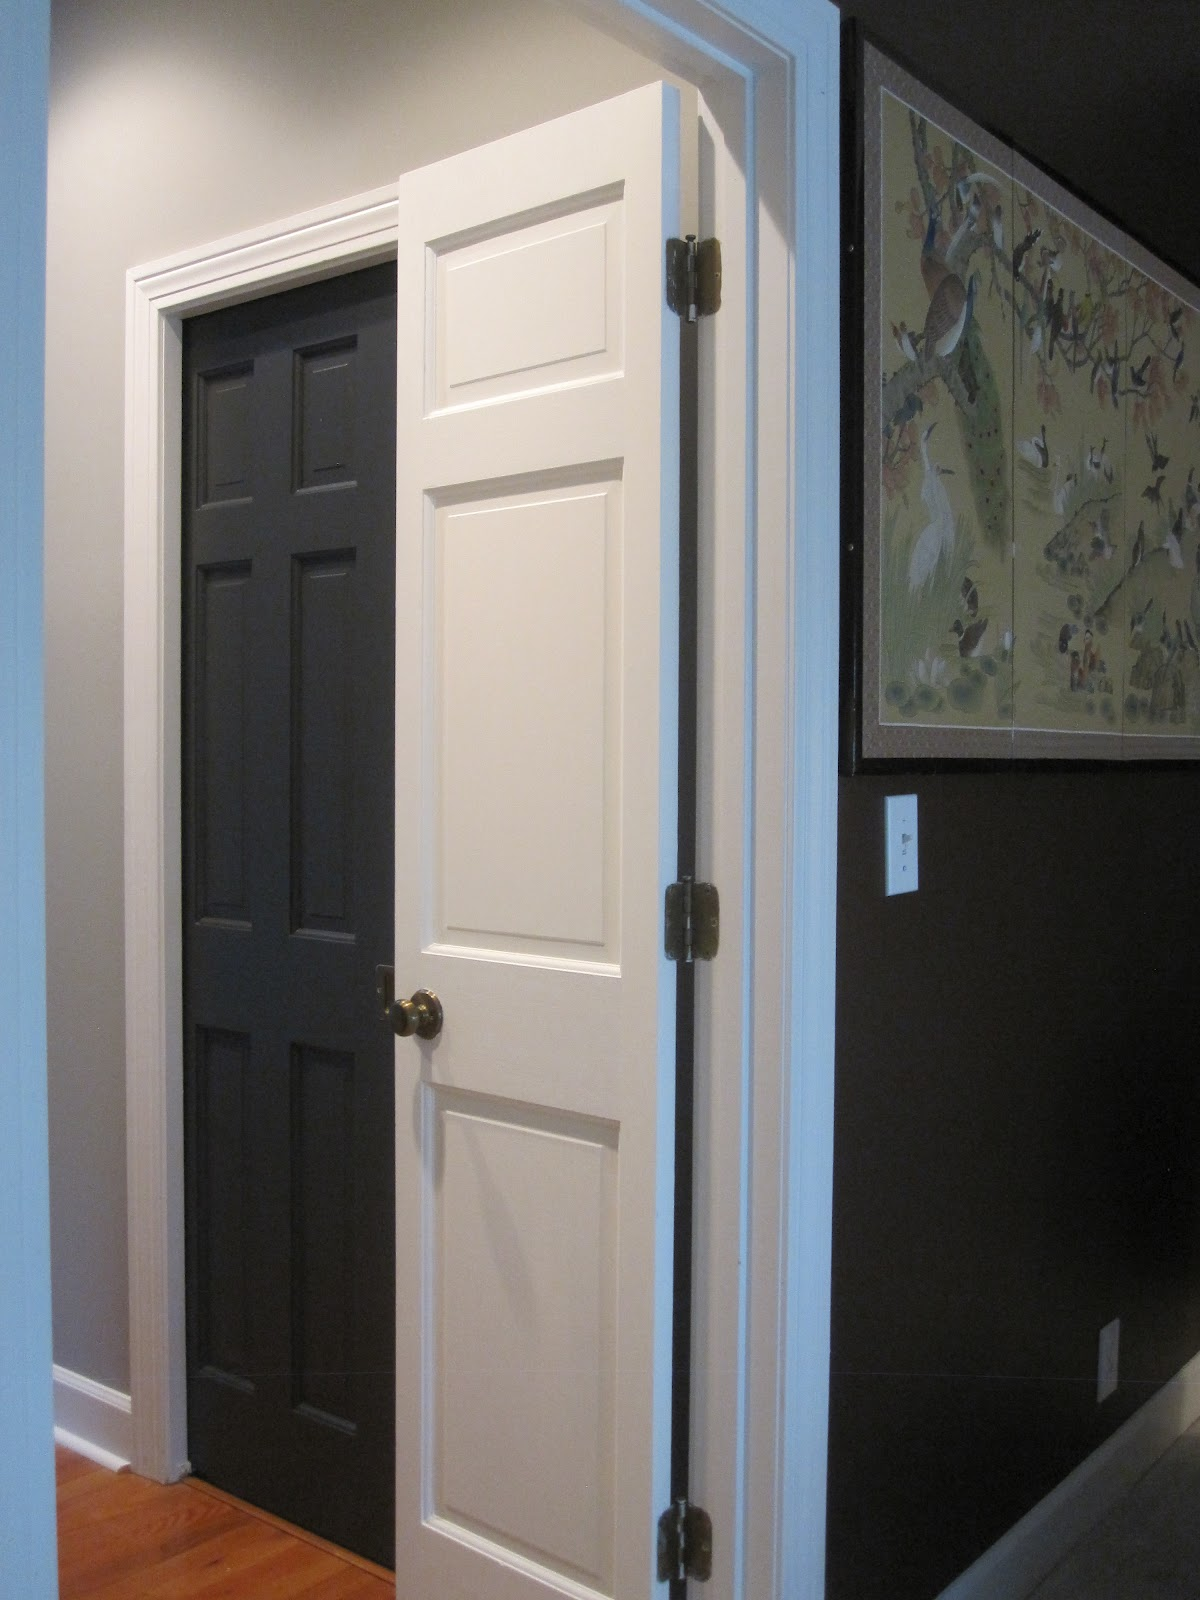 Black doors with white trim - I Love The Contrast Of The Dark Walls In The Bedroom With The Stark White Trim A Peek Into The Bathroom Shows The Gray Walls With Black Doors Love